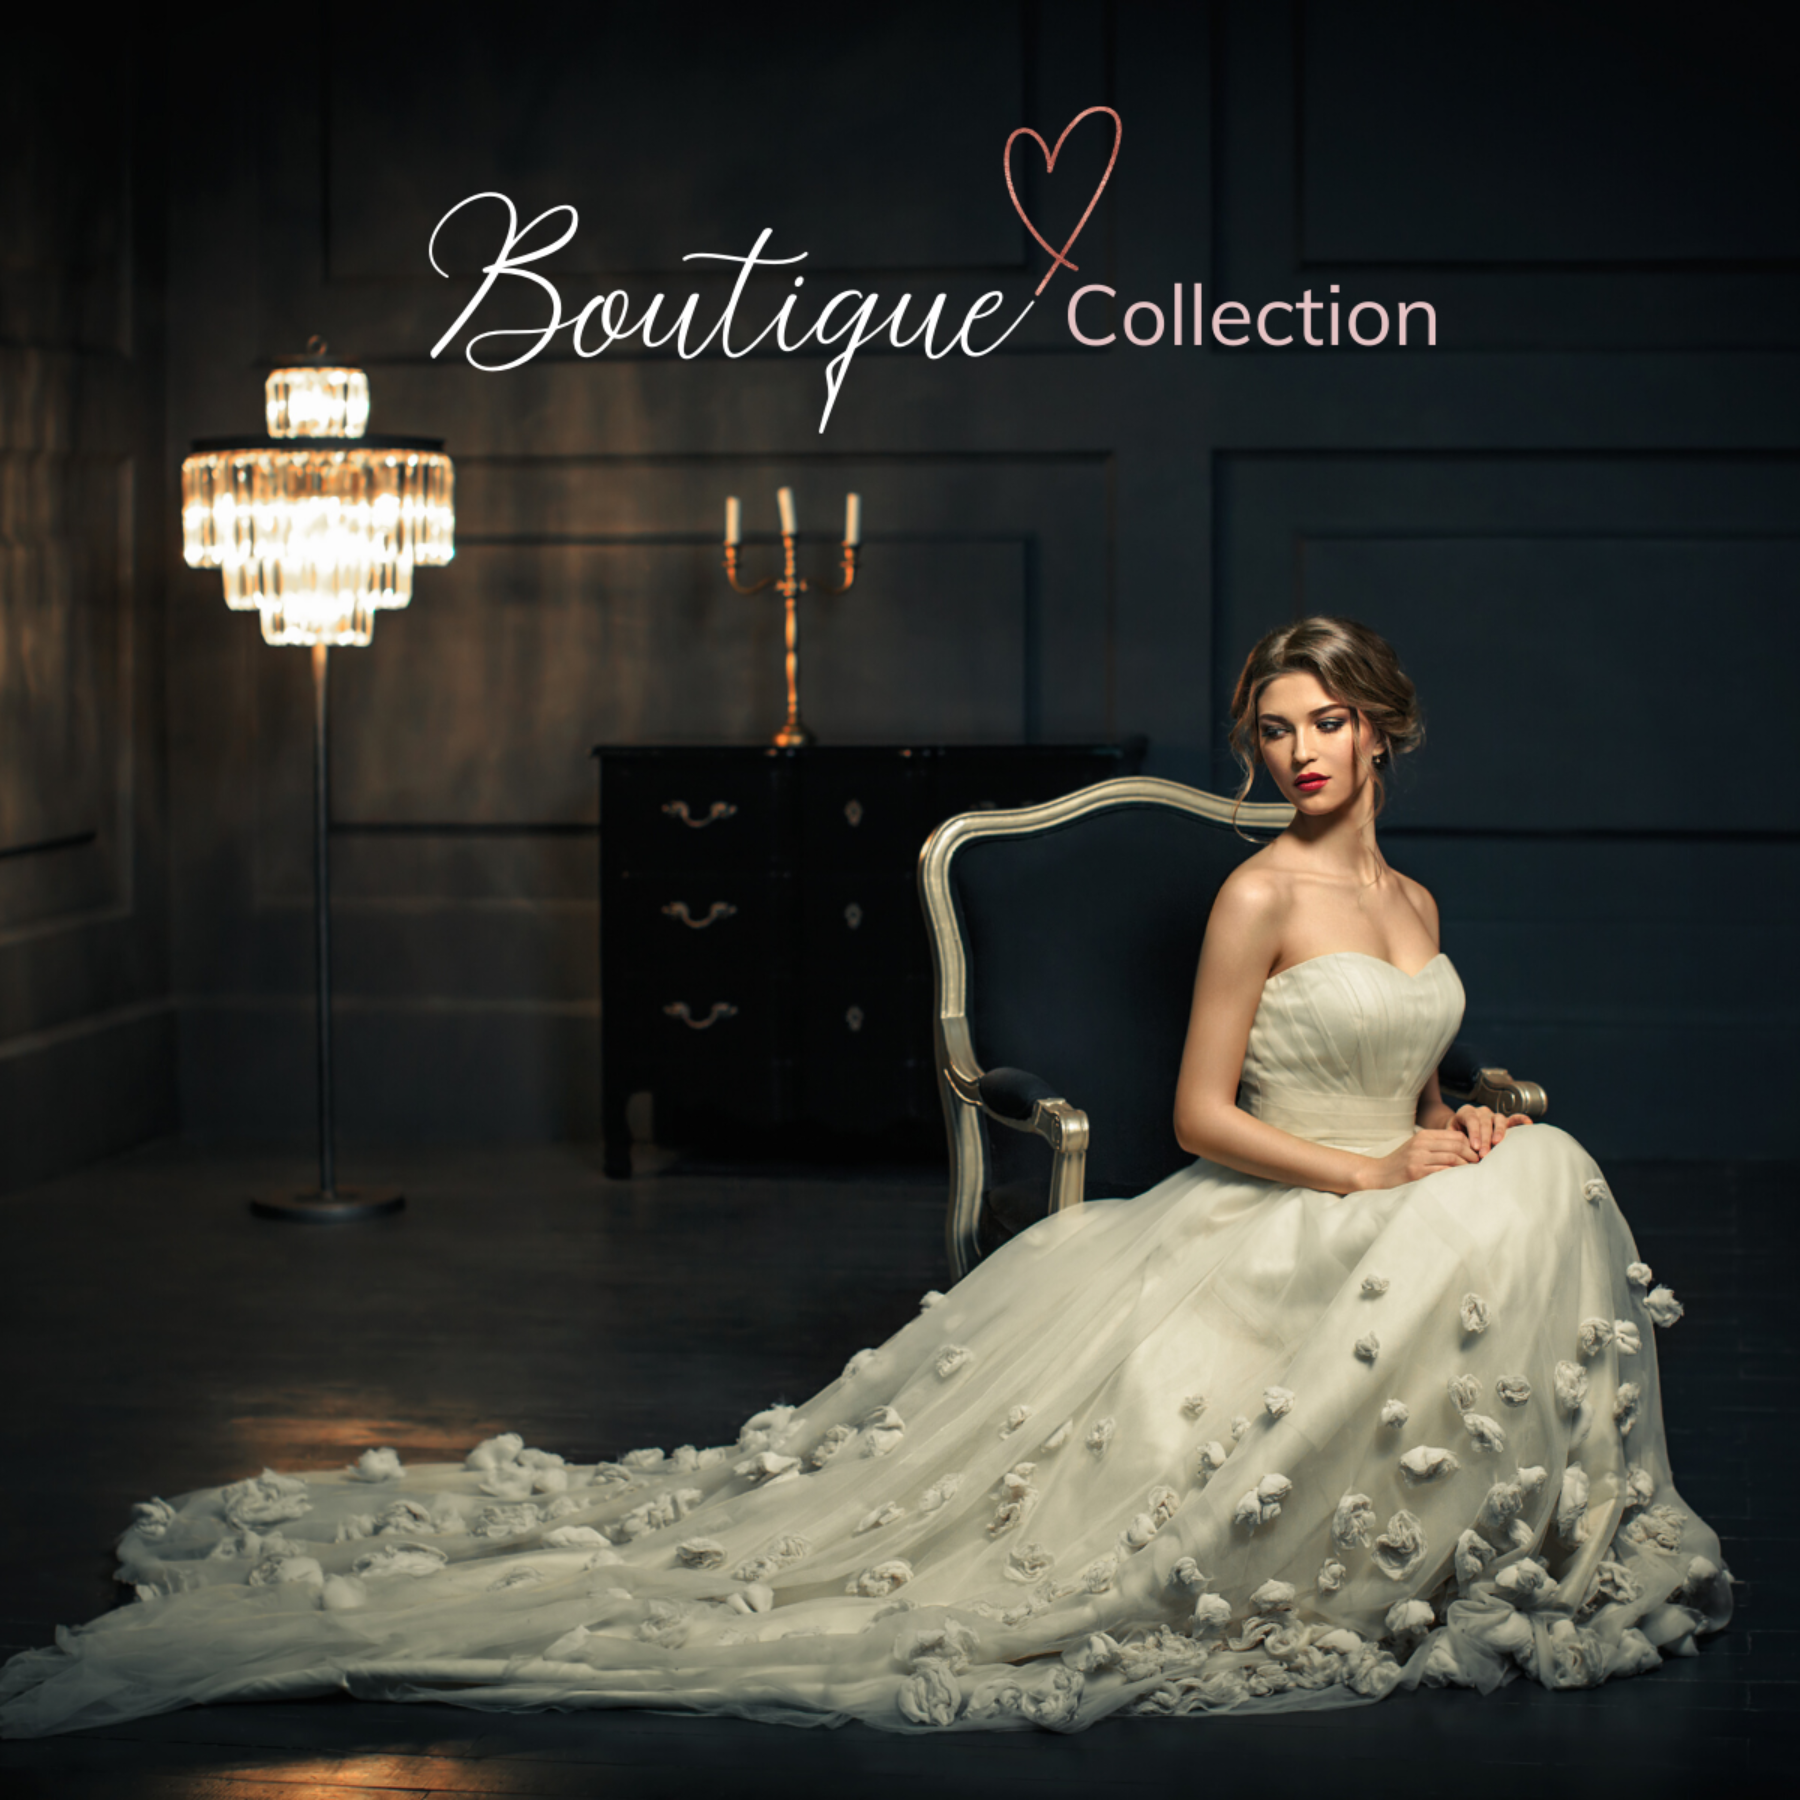 Boutique Collection of Scents